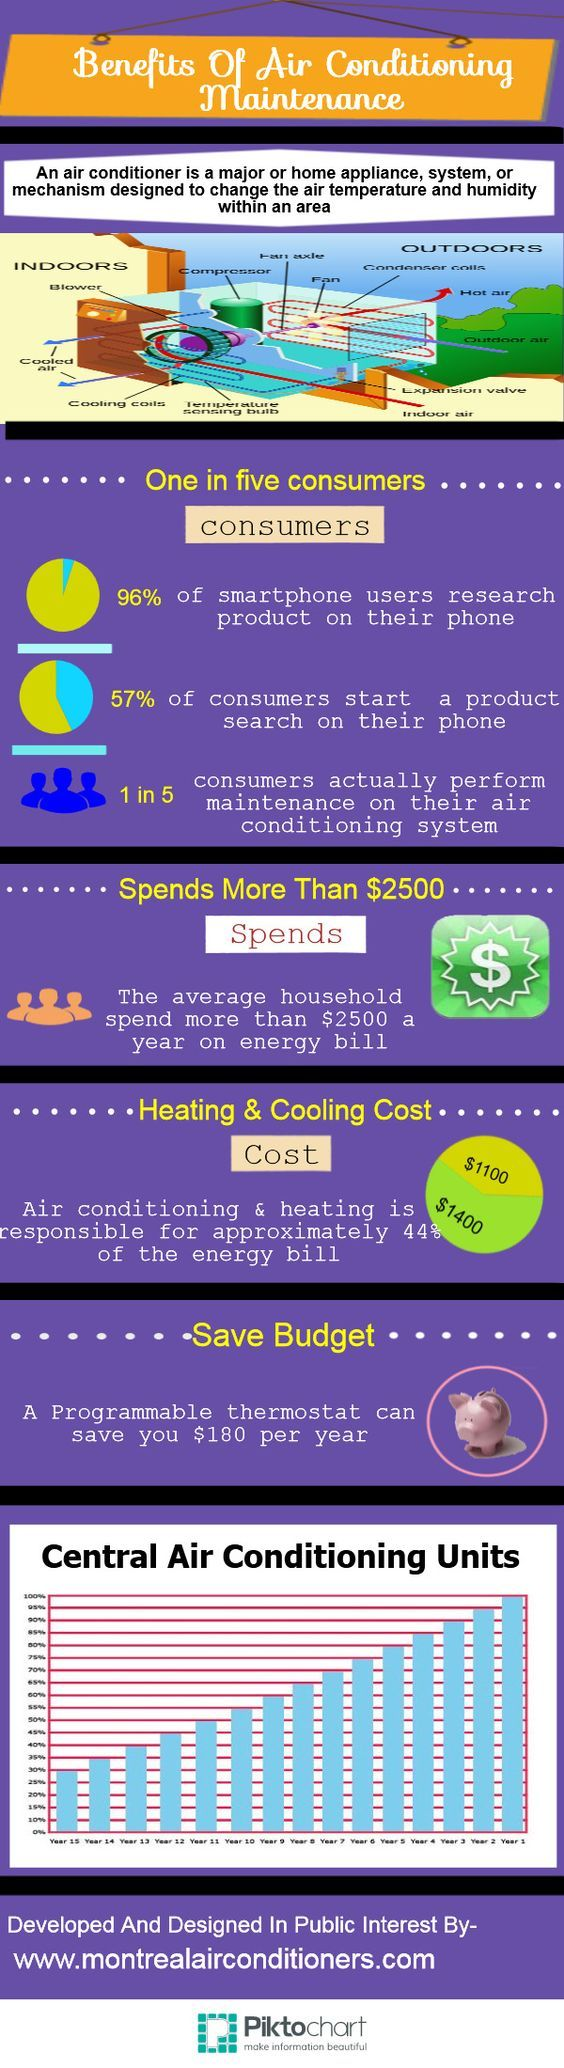 Benefits of Air Conditioning Maintenance (infographic)